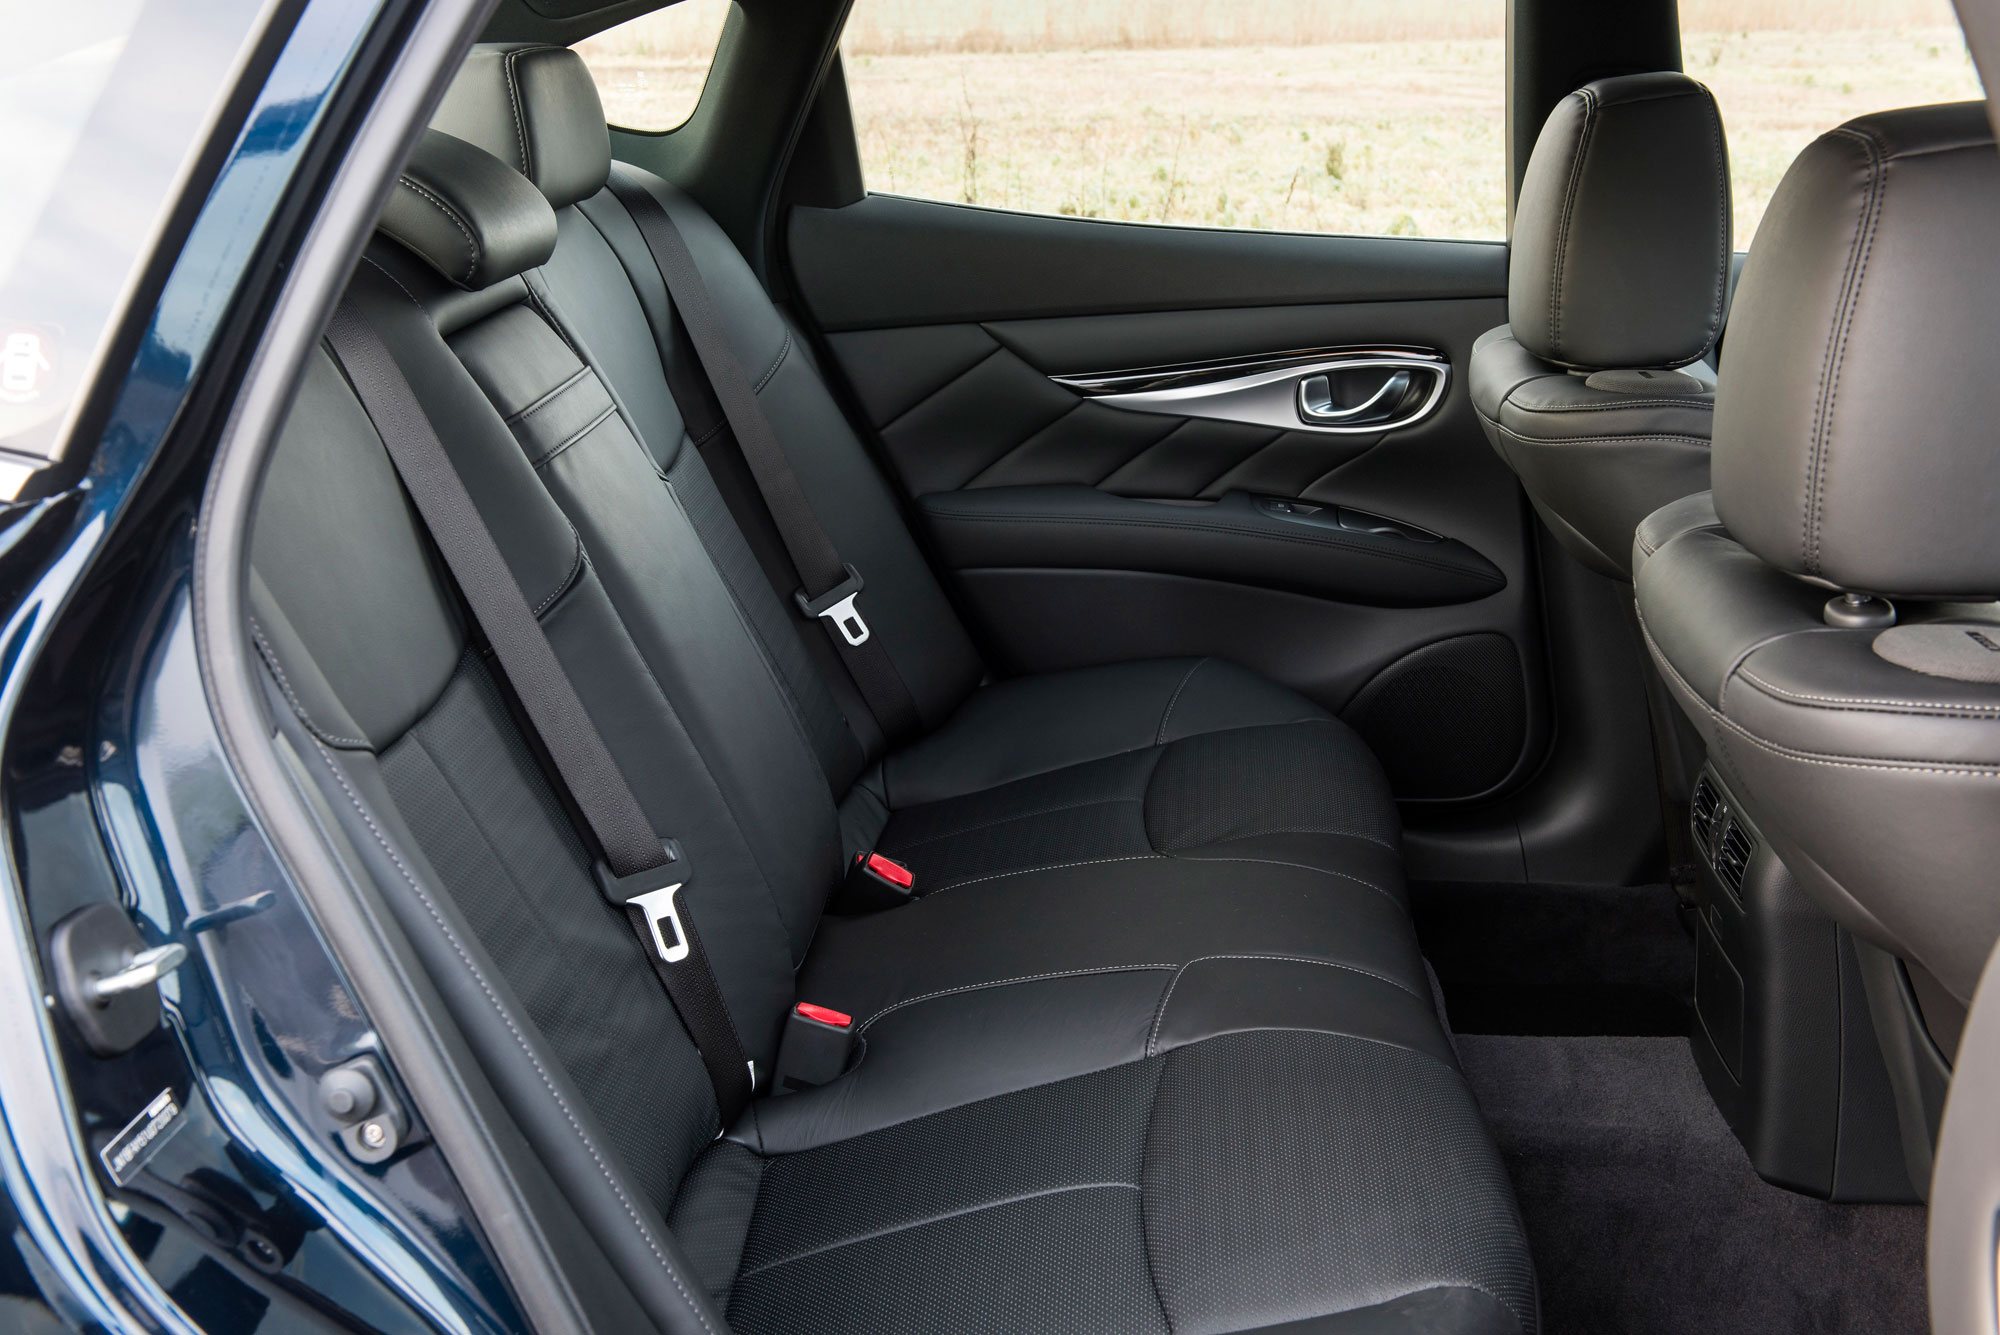 Rear passenger space within the Infiniti Q70